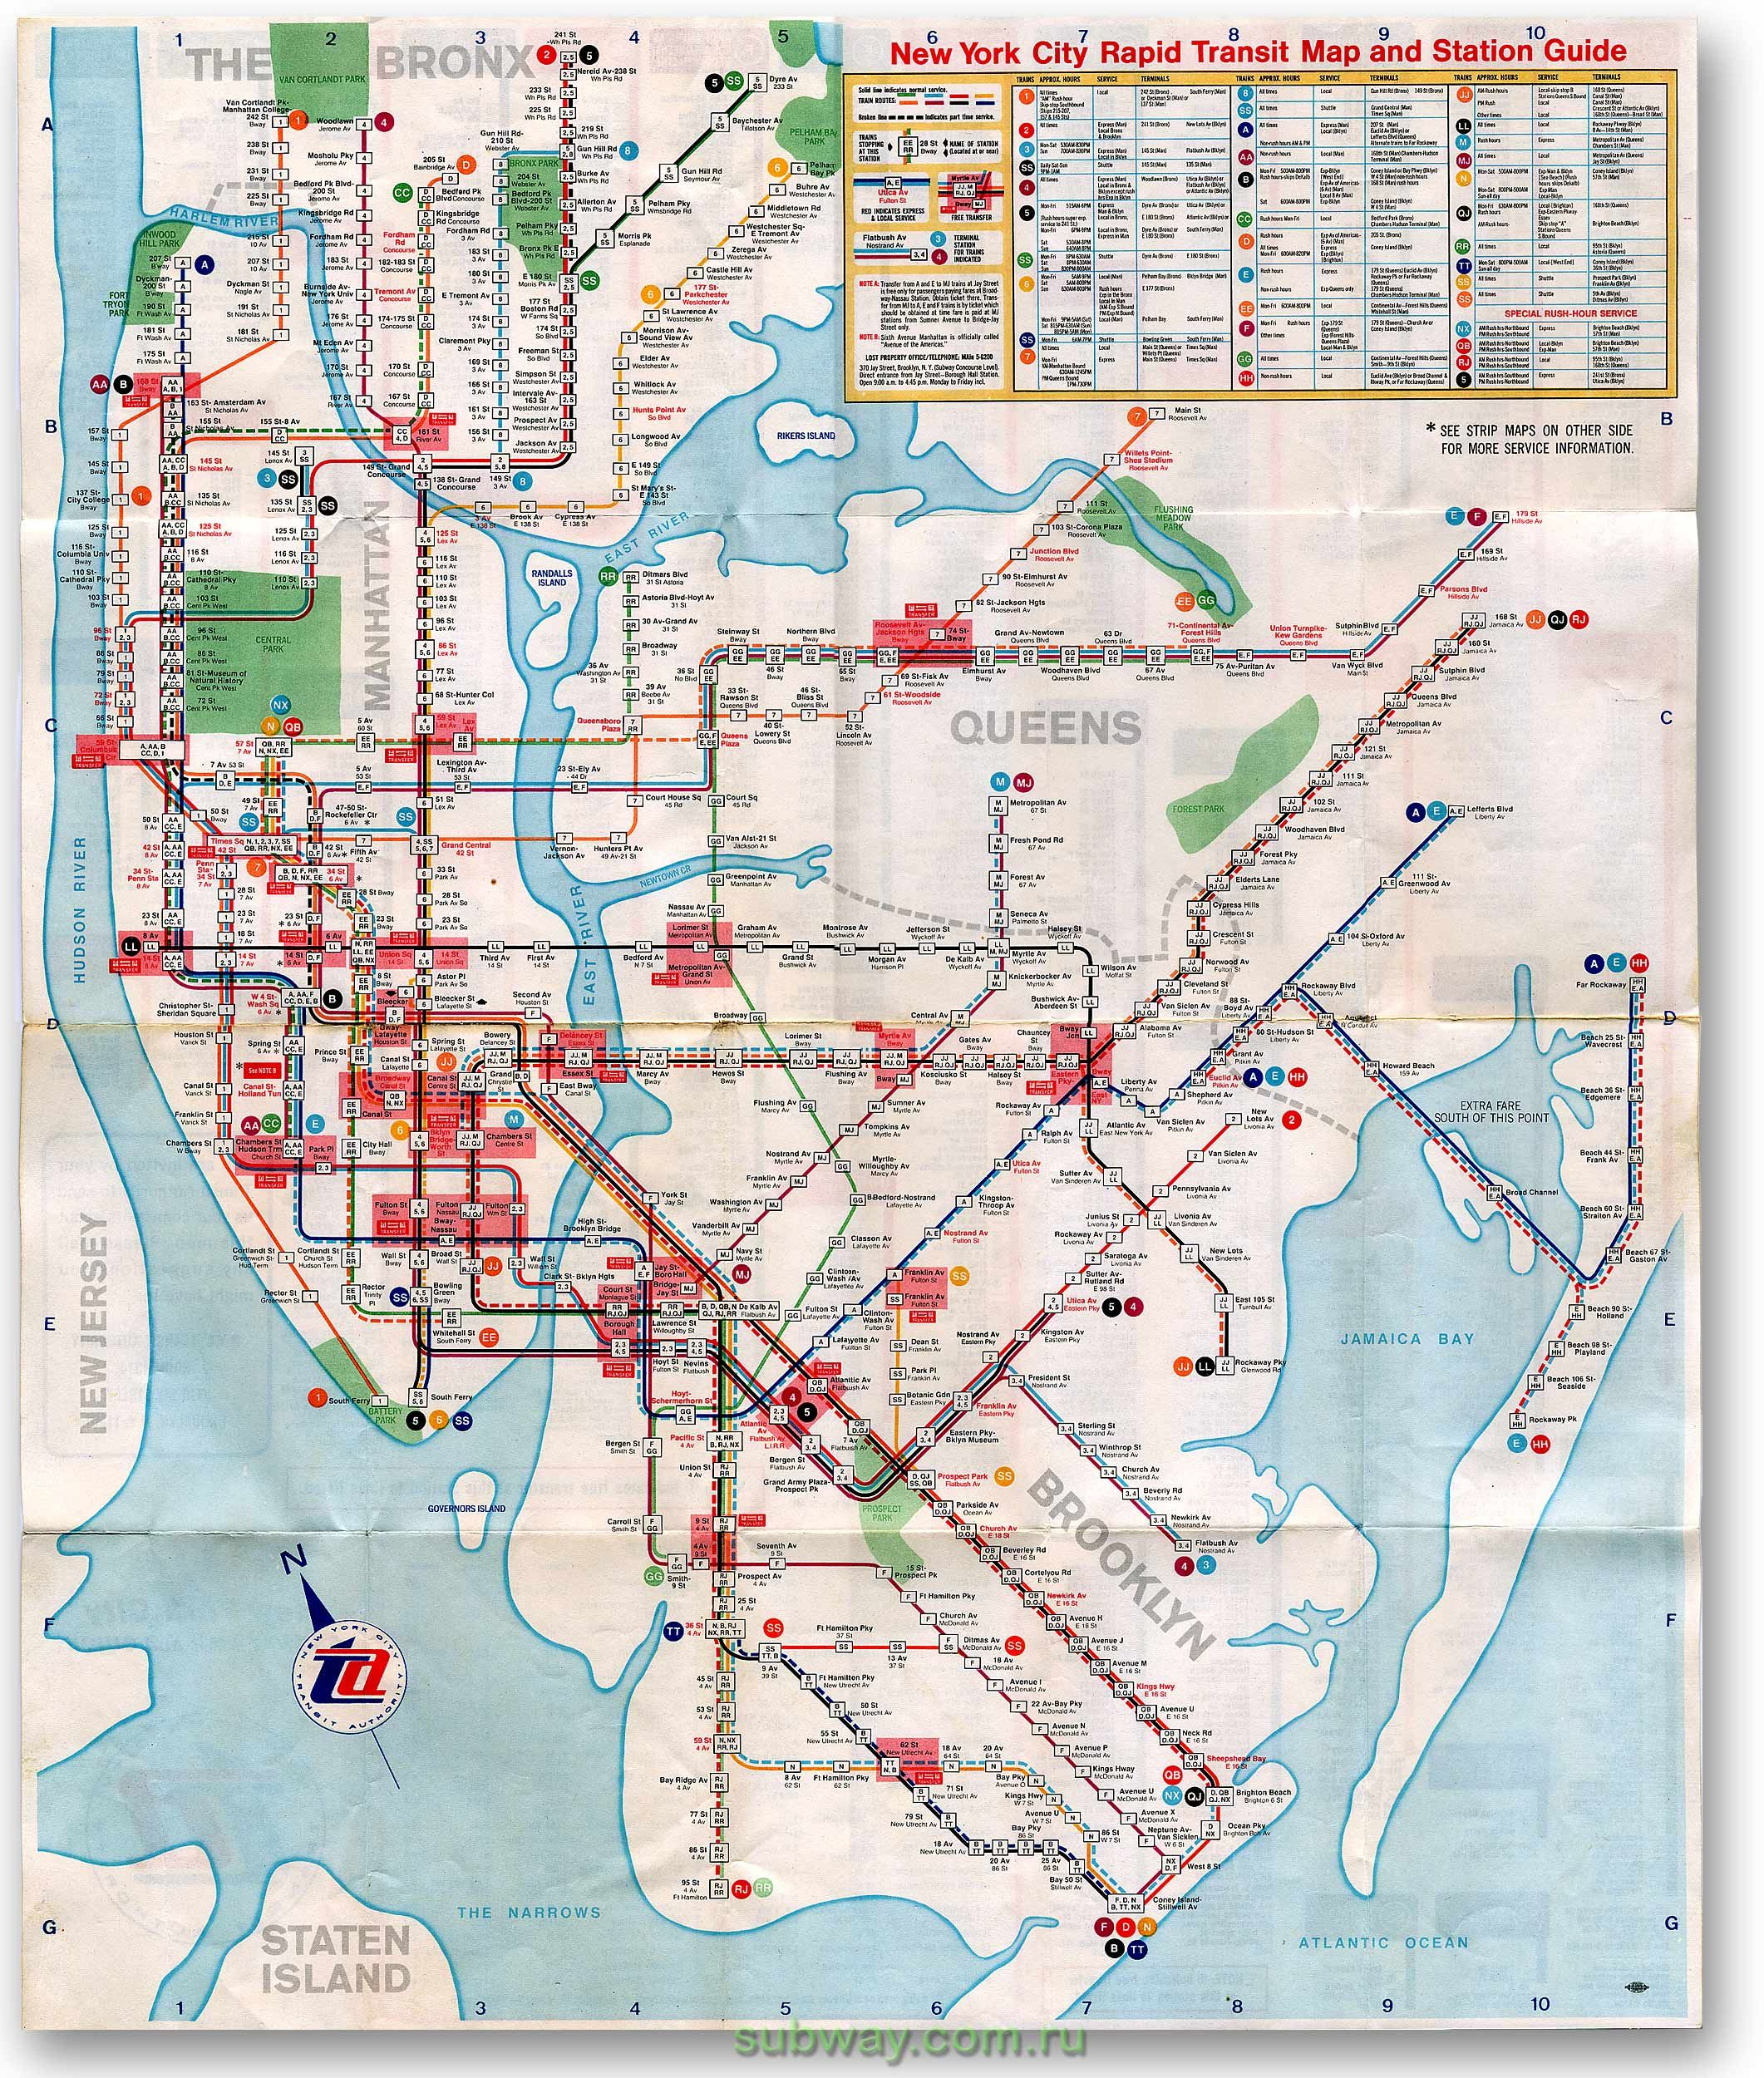 Subway Map Manhattan With Streets.1967 Subway Map Chrystie Street Edition Fun City 4ever Nyc